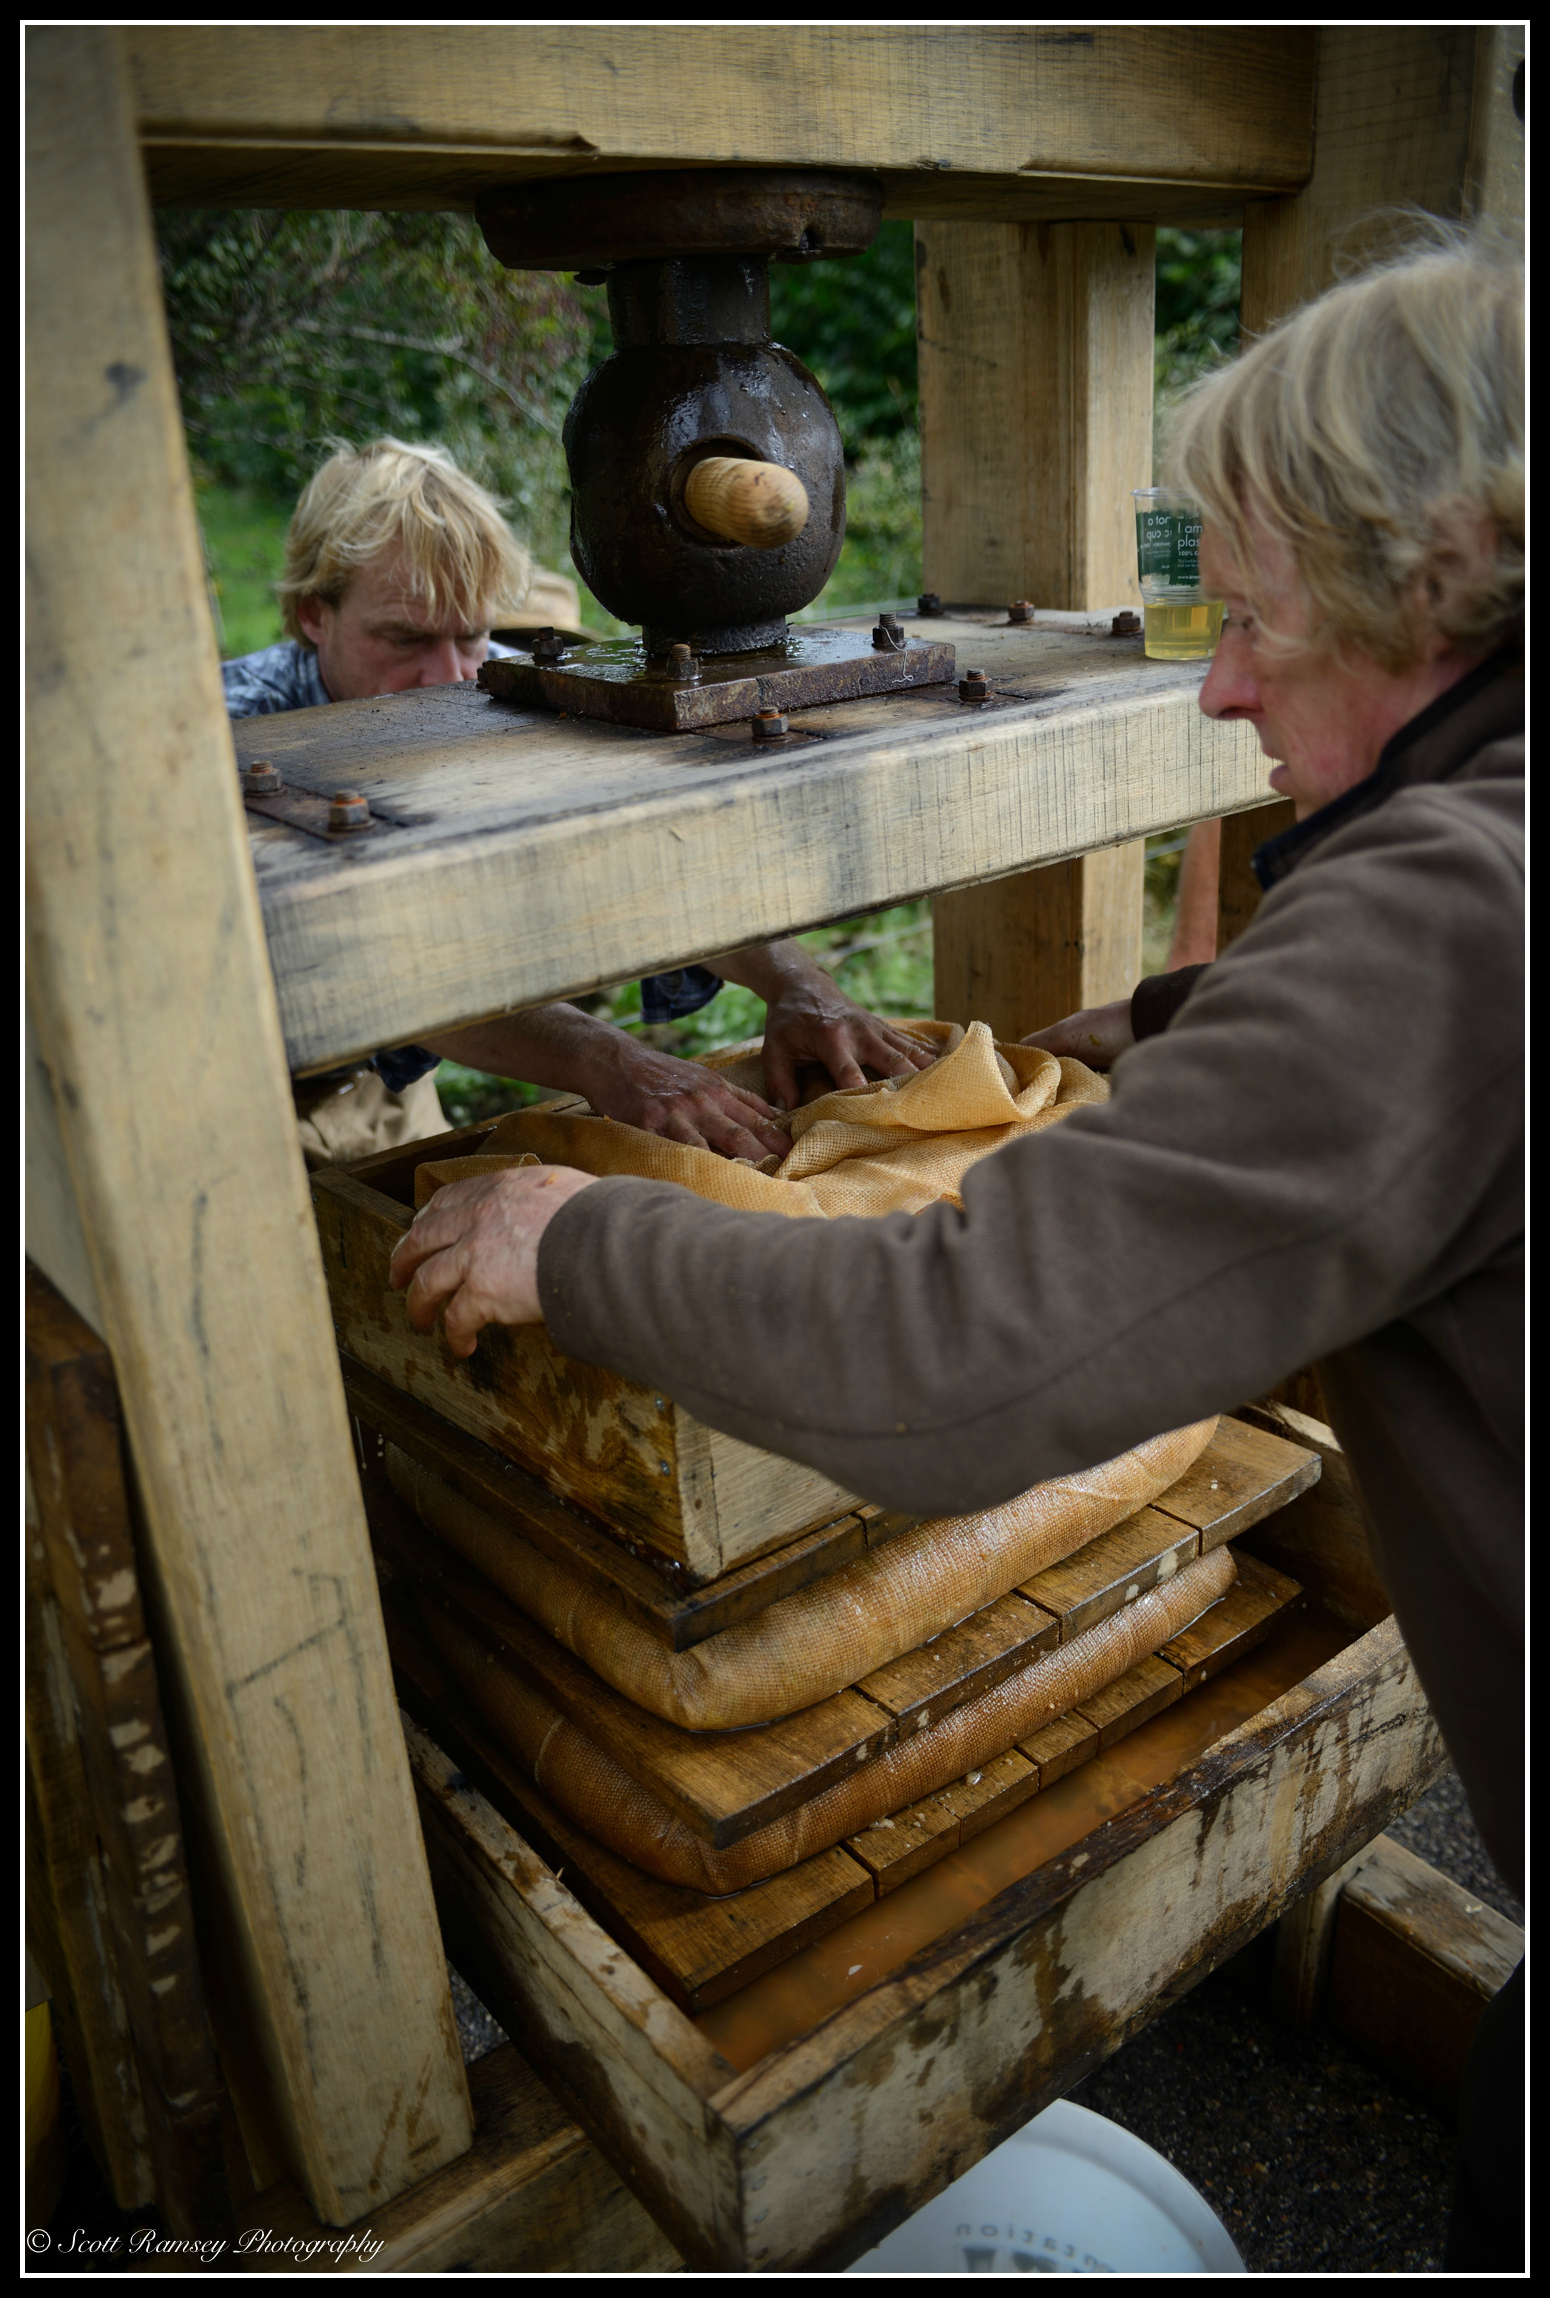 The final layer of apples is wrapped in hessian cloth and loaded onto the apple  press.